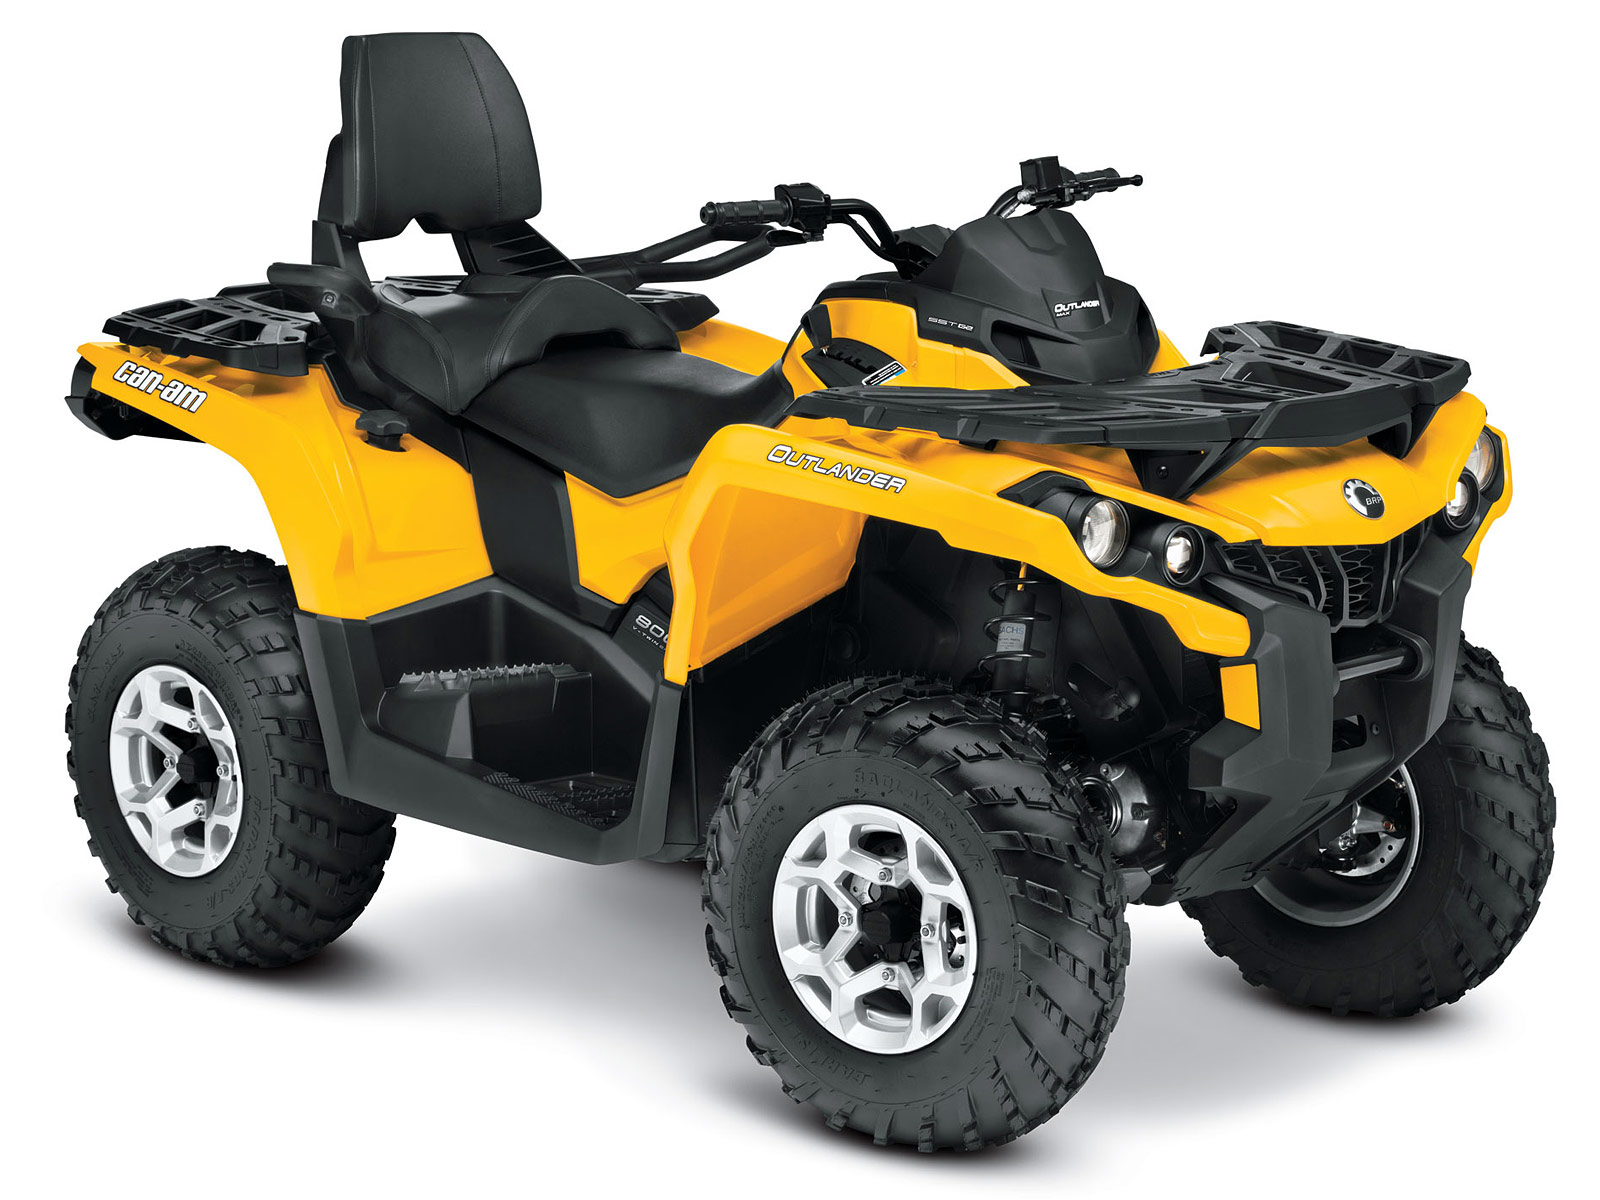 2013 can am outlander max dps 800r auto insurance information. Black Bedroom Furniture Sets. Home Design Ideas